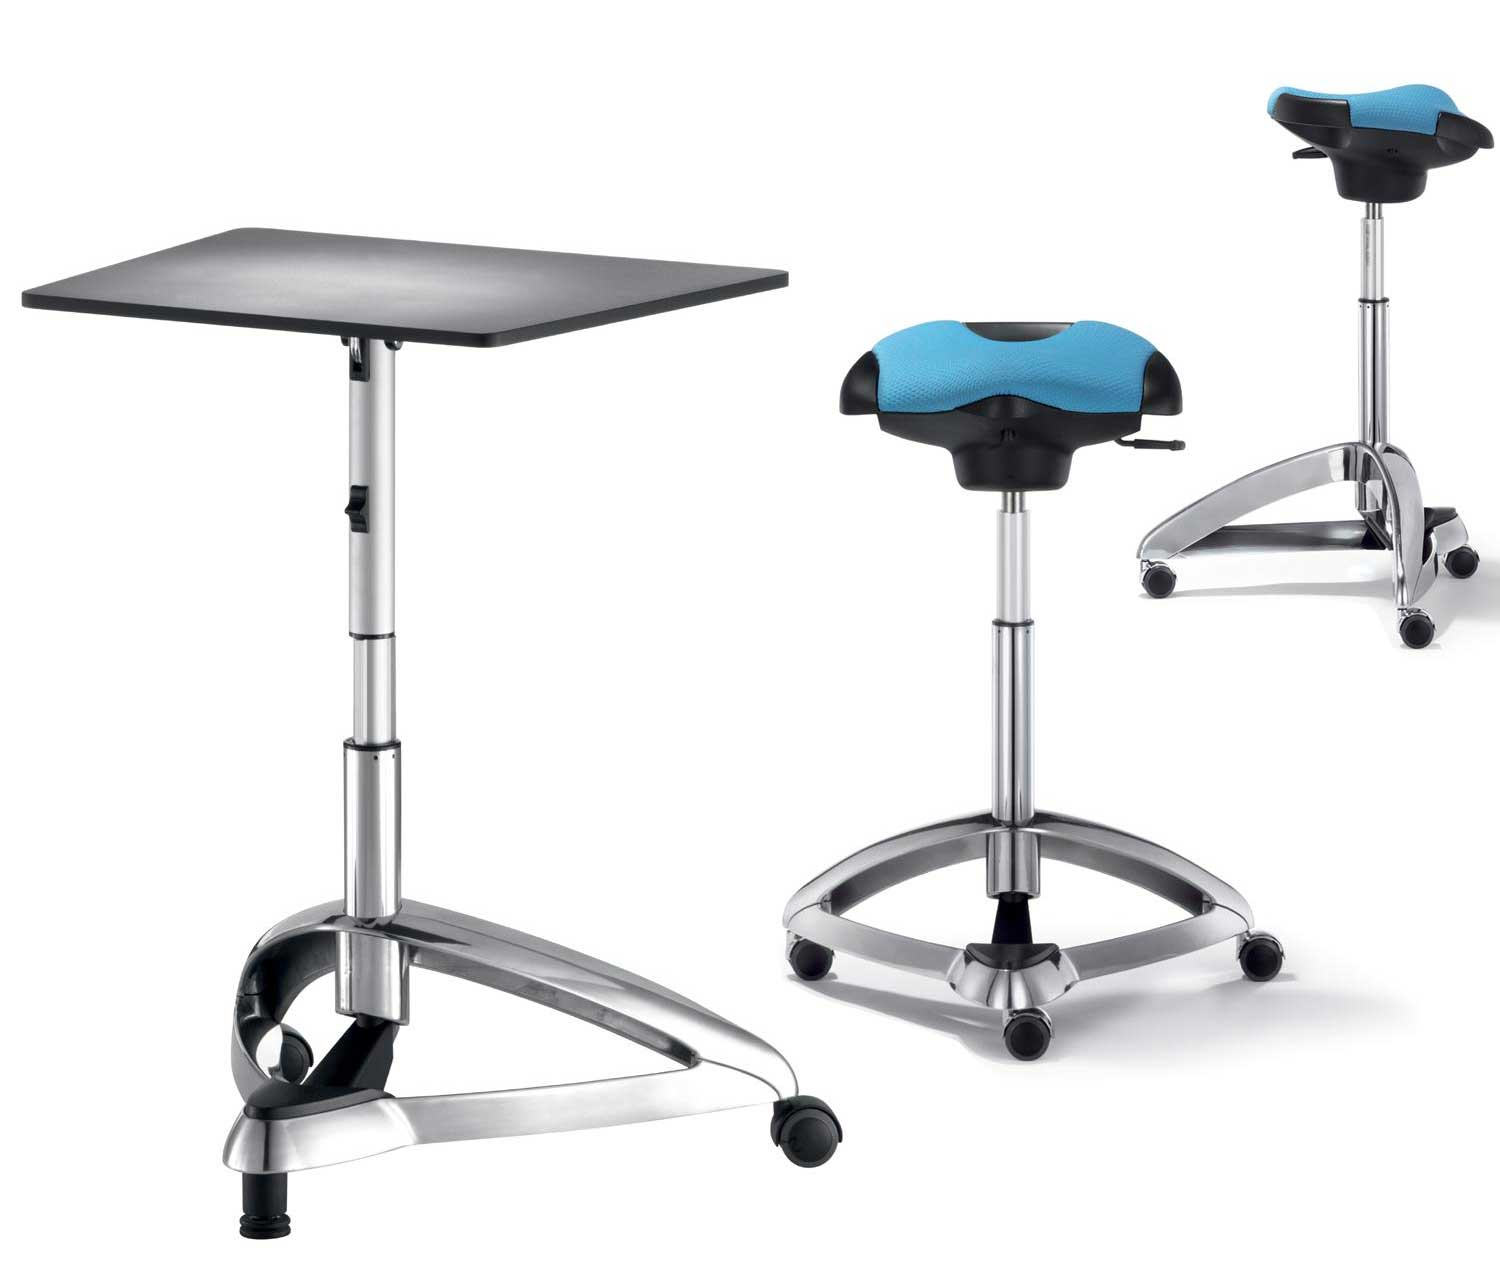 Dolpdhin Futuristic Metal Standing Office Desk and Seats